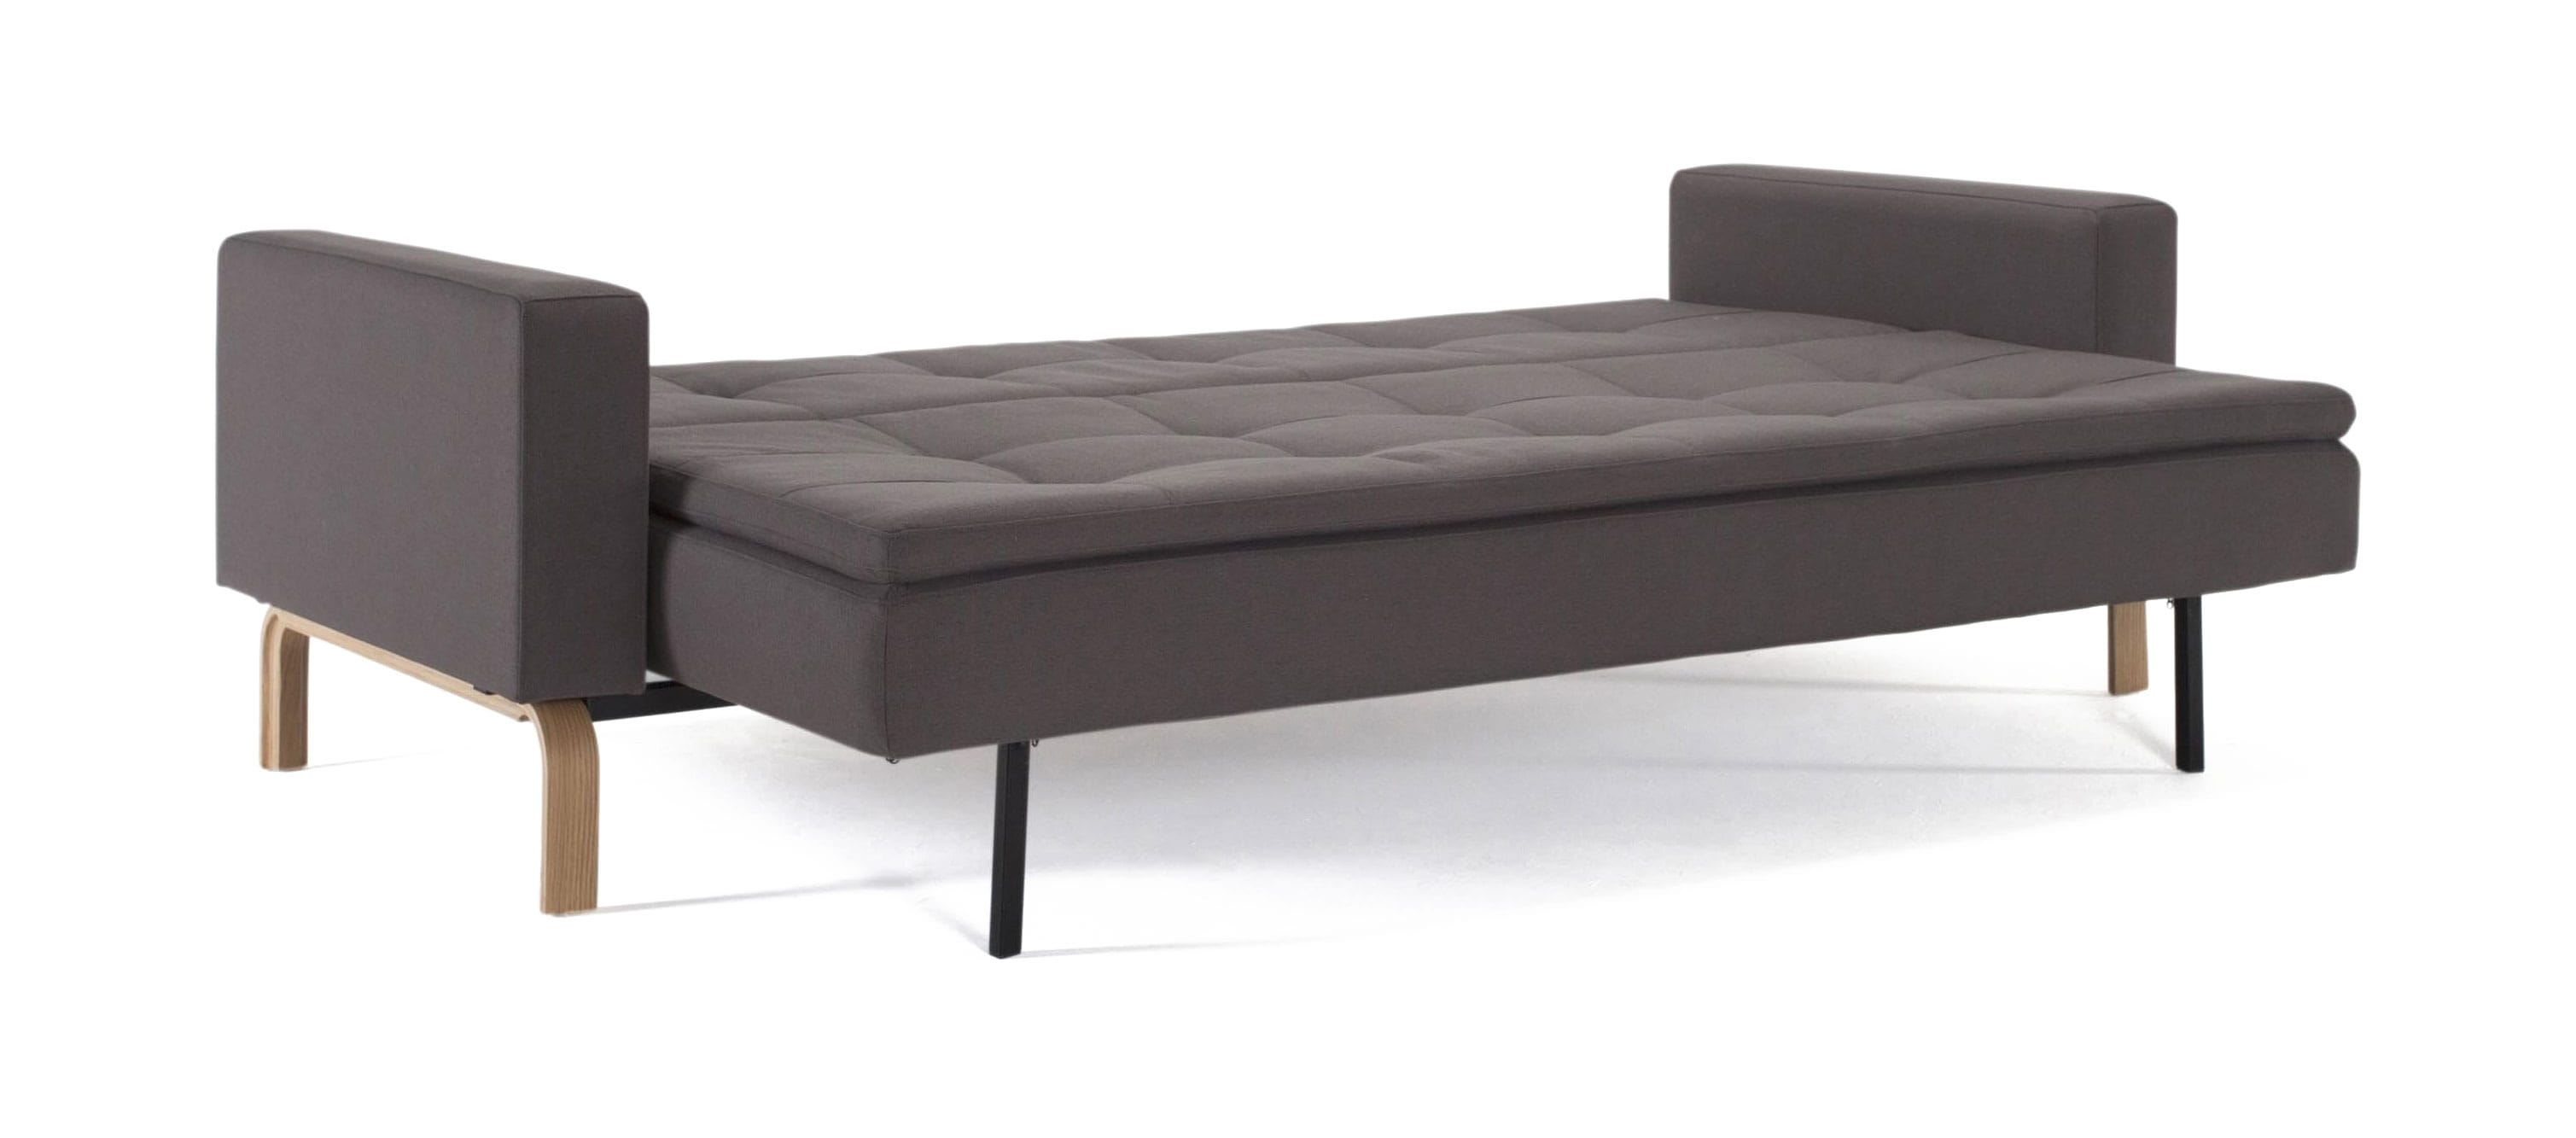 Peachy Cassius Dual Sofa Bed W Arms Full Size Soft Gray By Innovation Andrewgaddart Wooden Chair Designs For Living Room Andrewgaddartcom